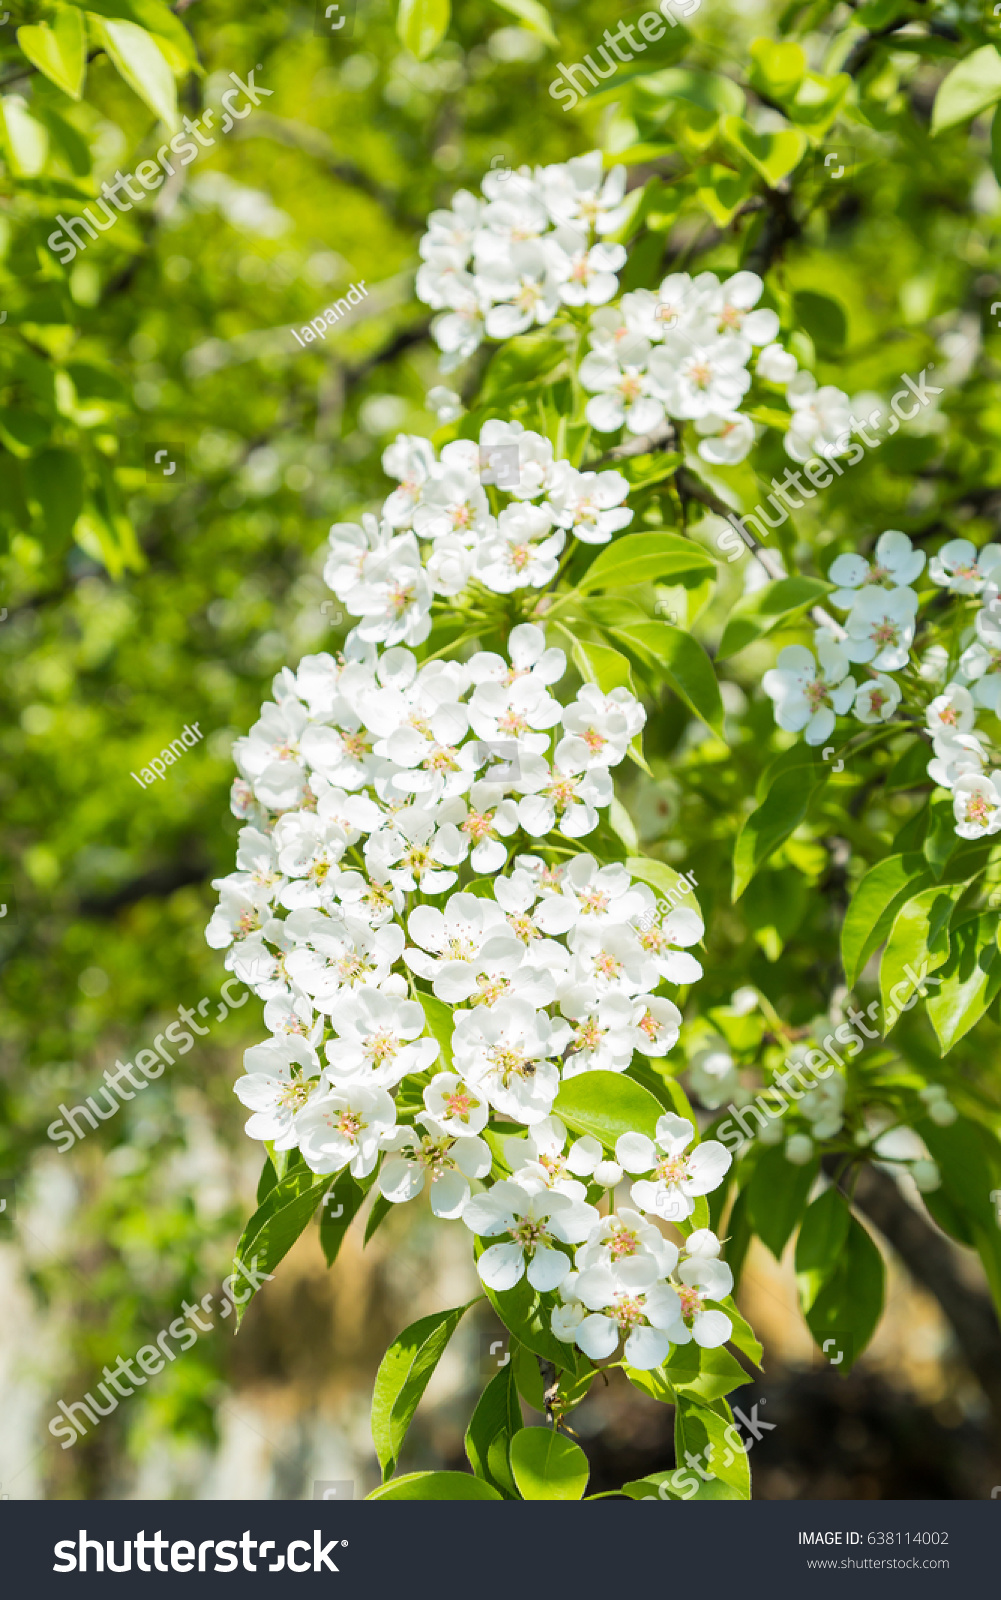 Flowering pear tree white flowers green stock photo download now flowering pear tree white flowers and green leaves on the branches fruit garden in mightylinksfo